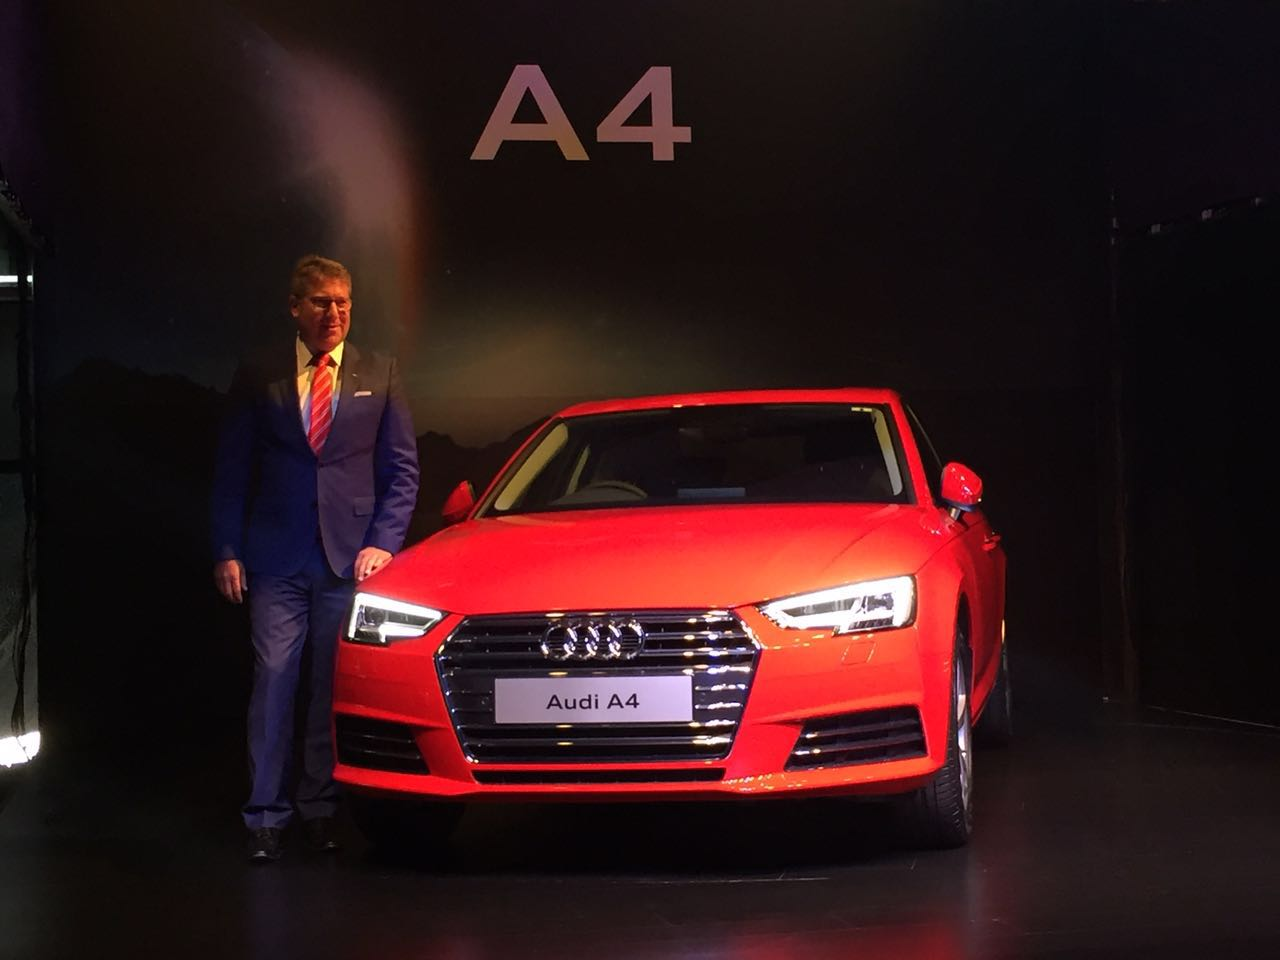 2016-audi-a4-b9-version-india-price-mileage-specifications-first-look-news